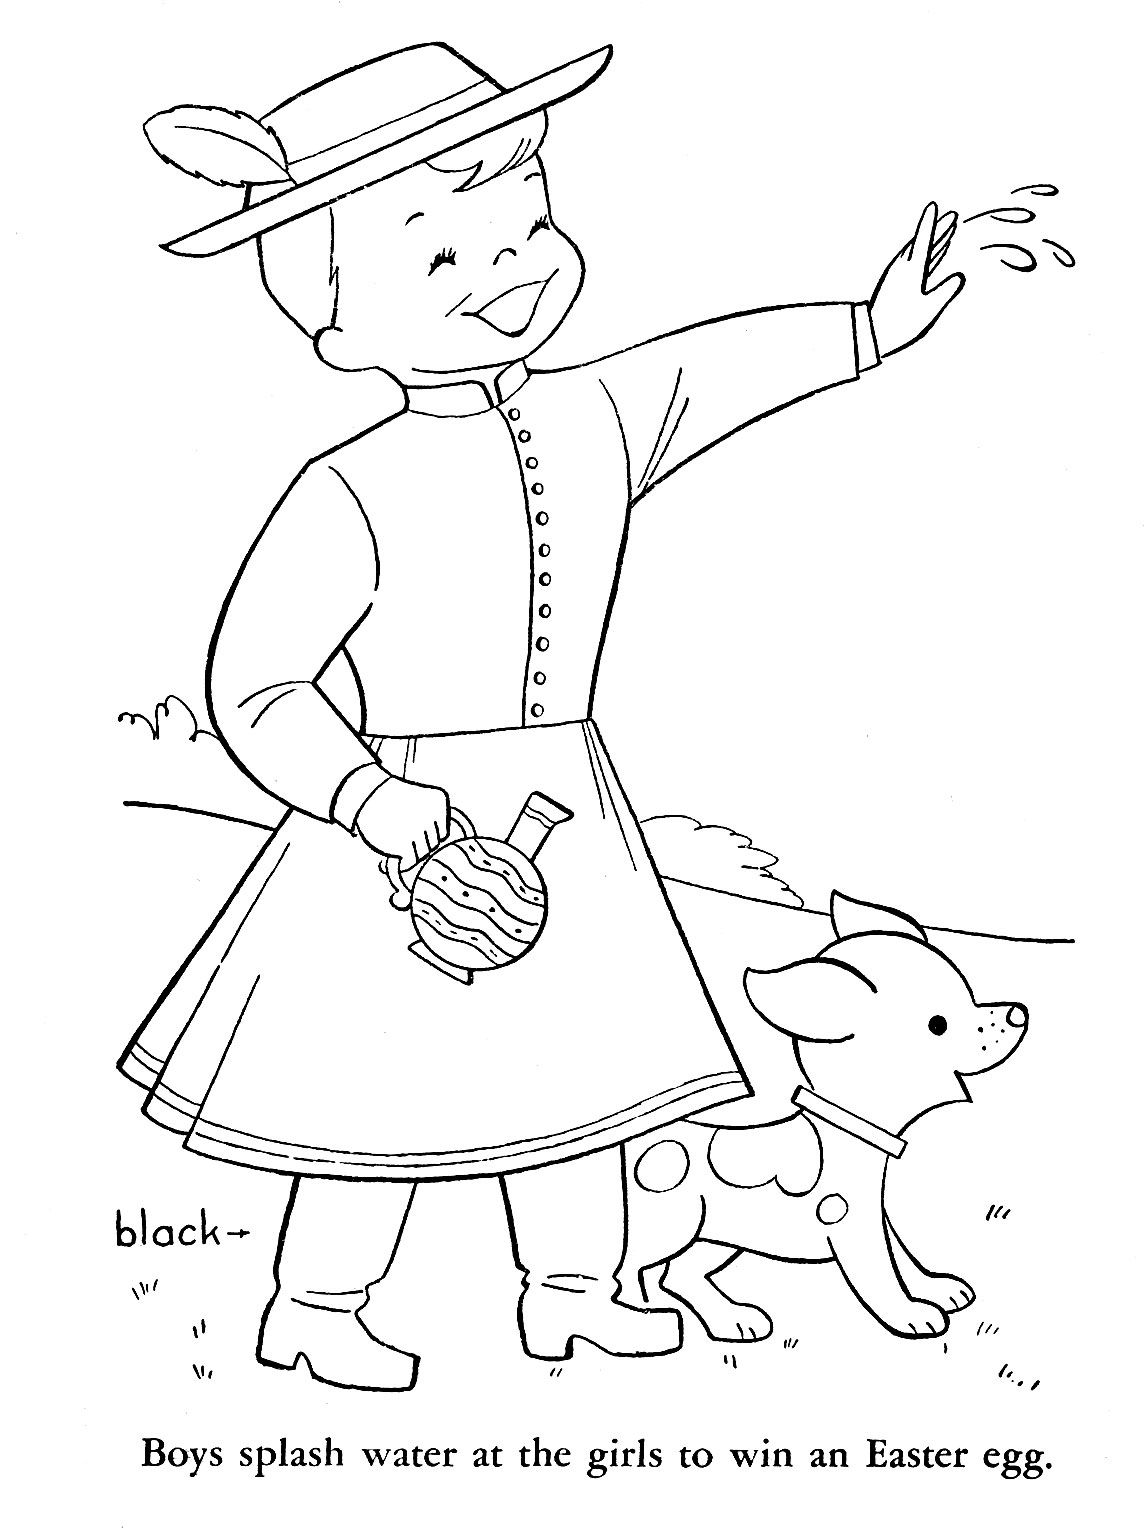 sweden map coloring pages - photo#41